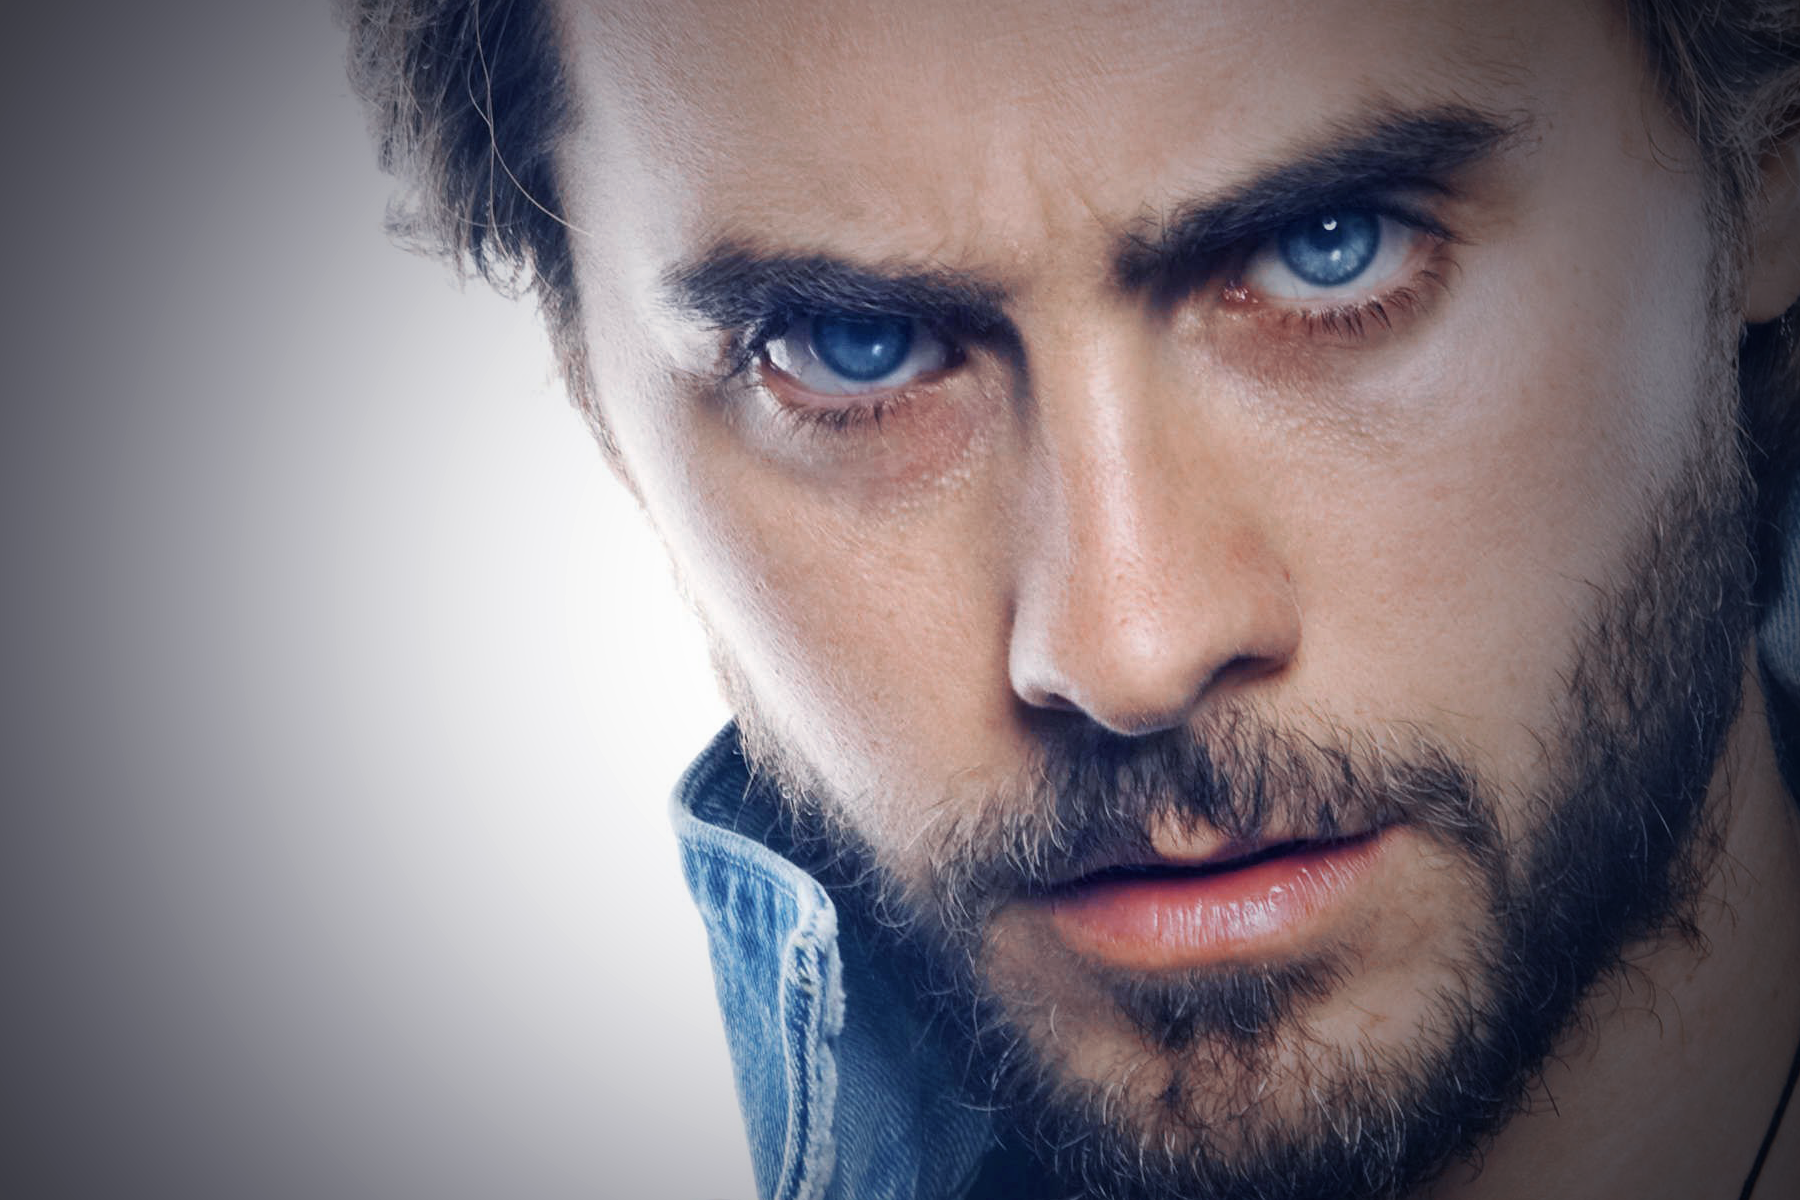 Jared leto images jared leto hd wallpaper and background photos - Jared Leto Images Jared Leto Hd Wallpaper And Background Photos 17